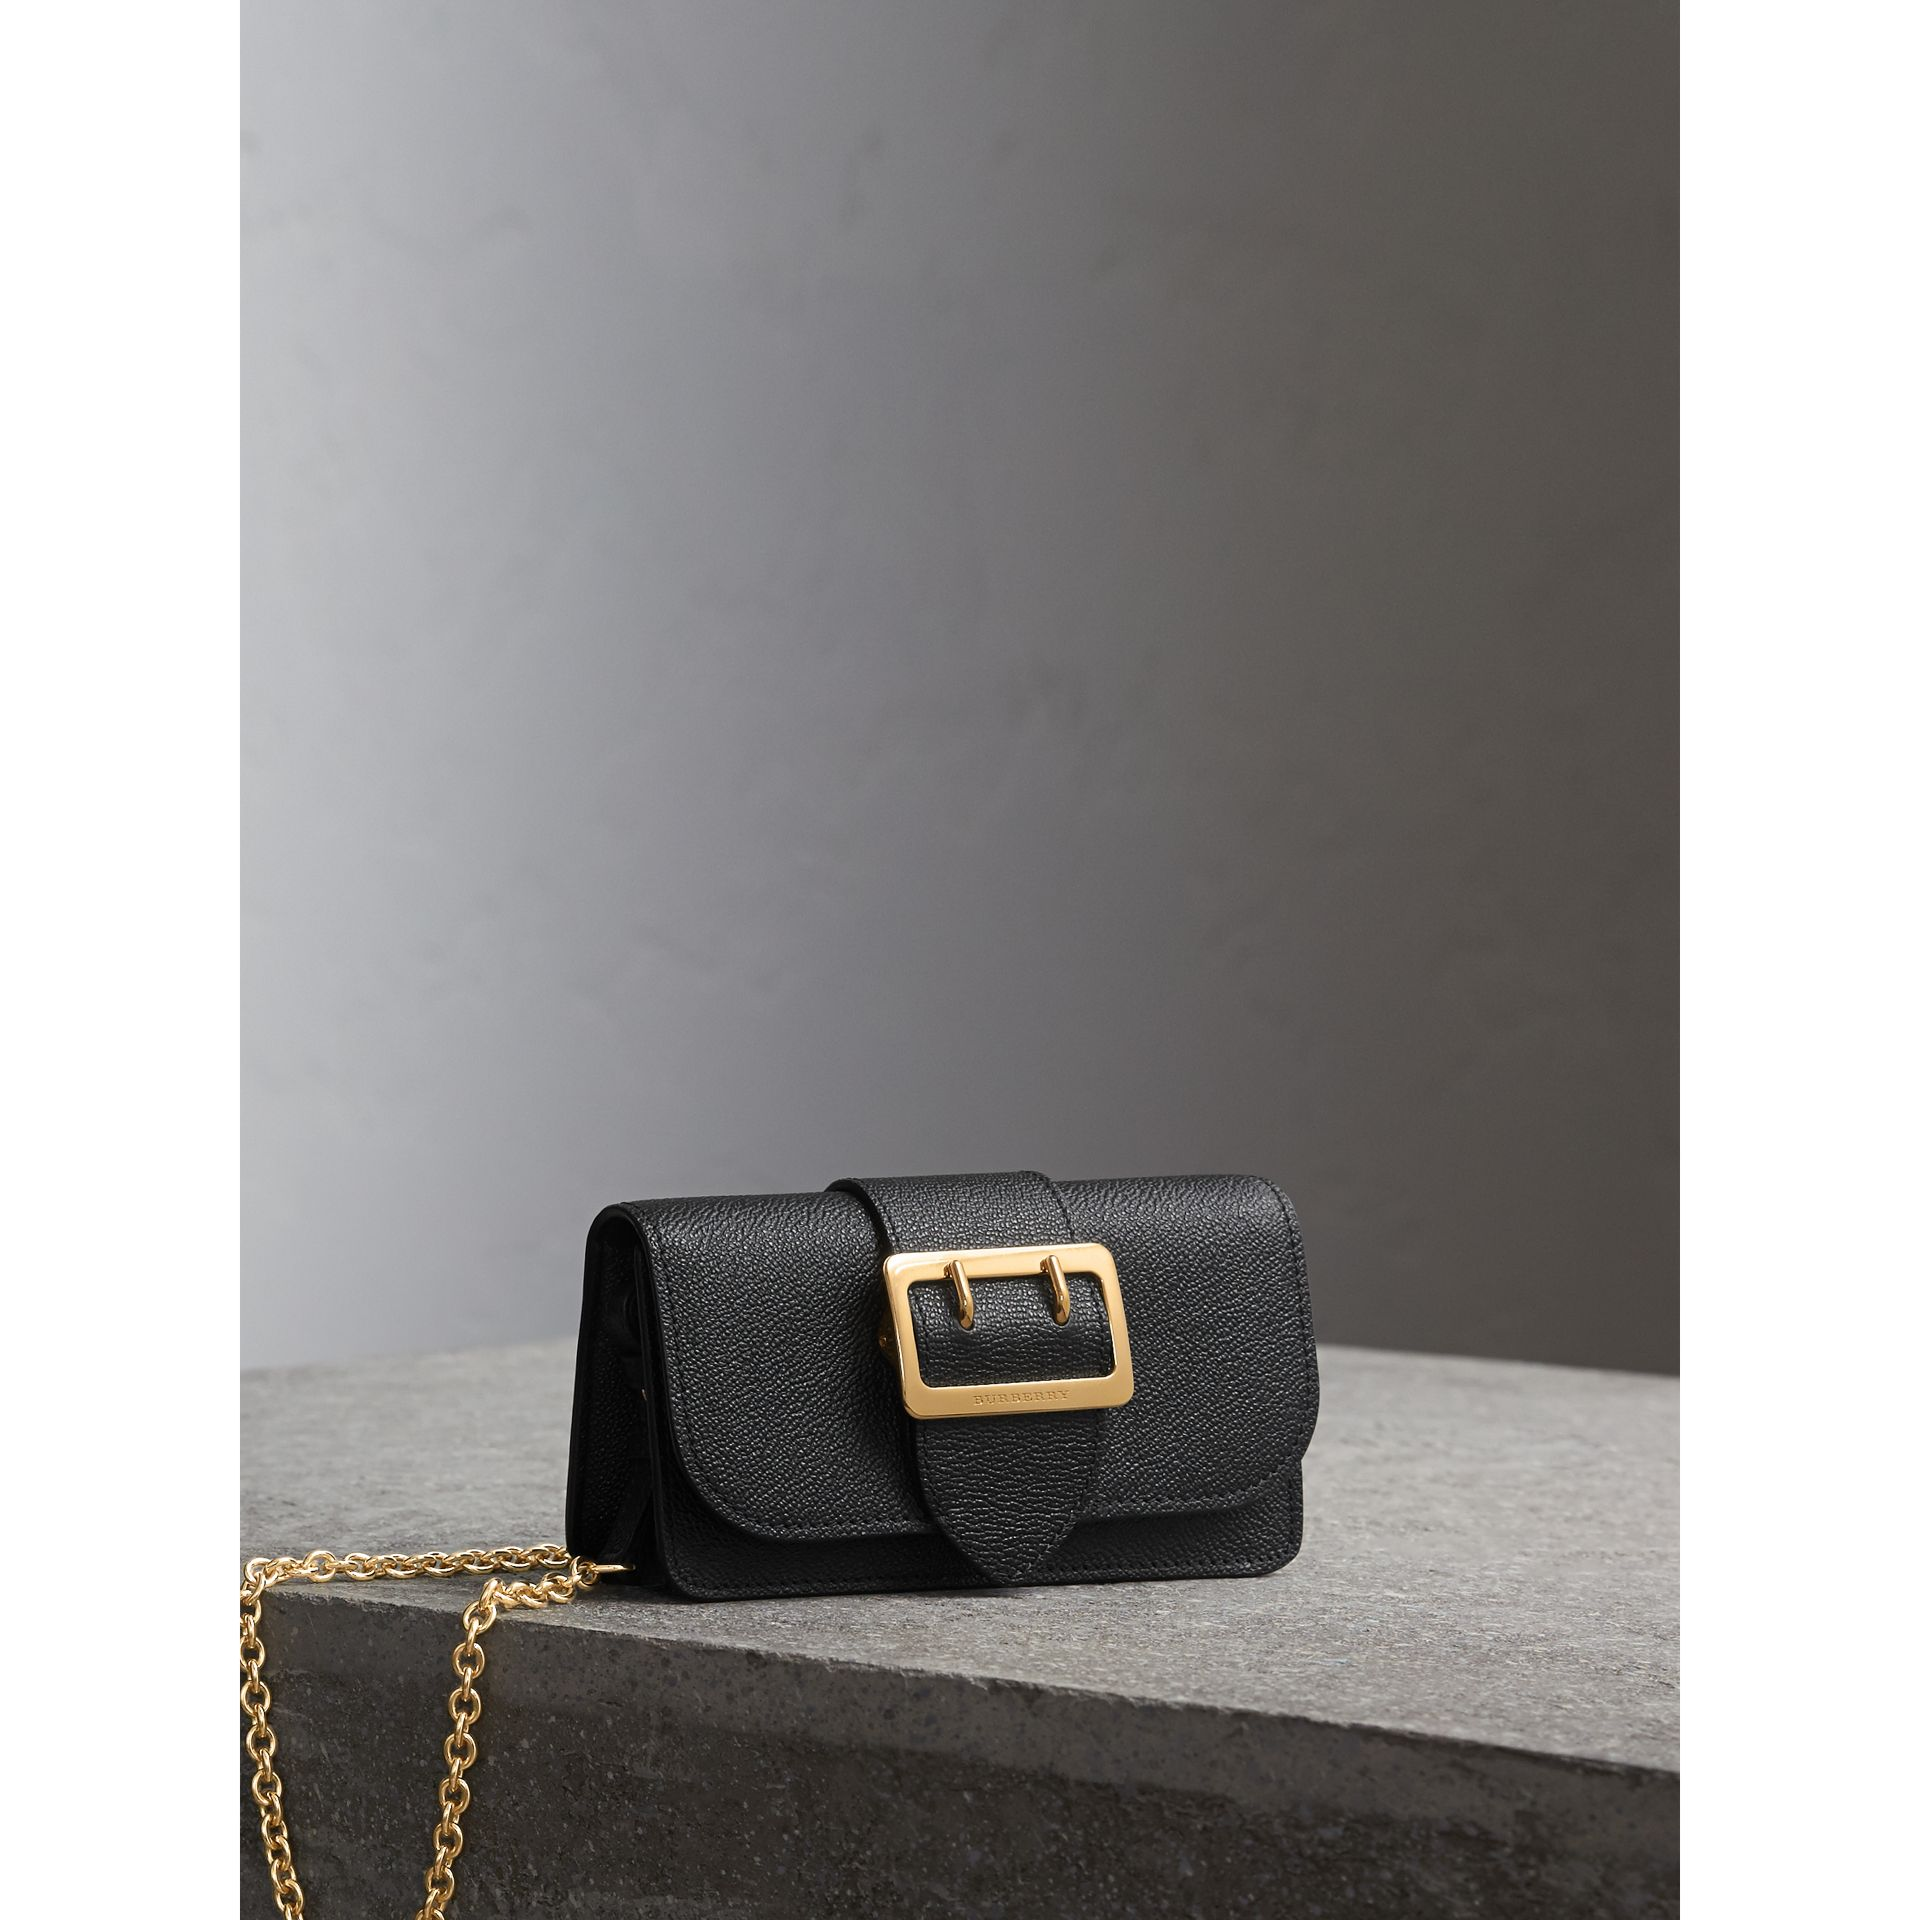 Mini sac The Buckle en cuir grainé (Noir) - Femme | Burberry - photo de la galerie 7